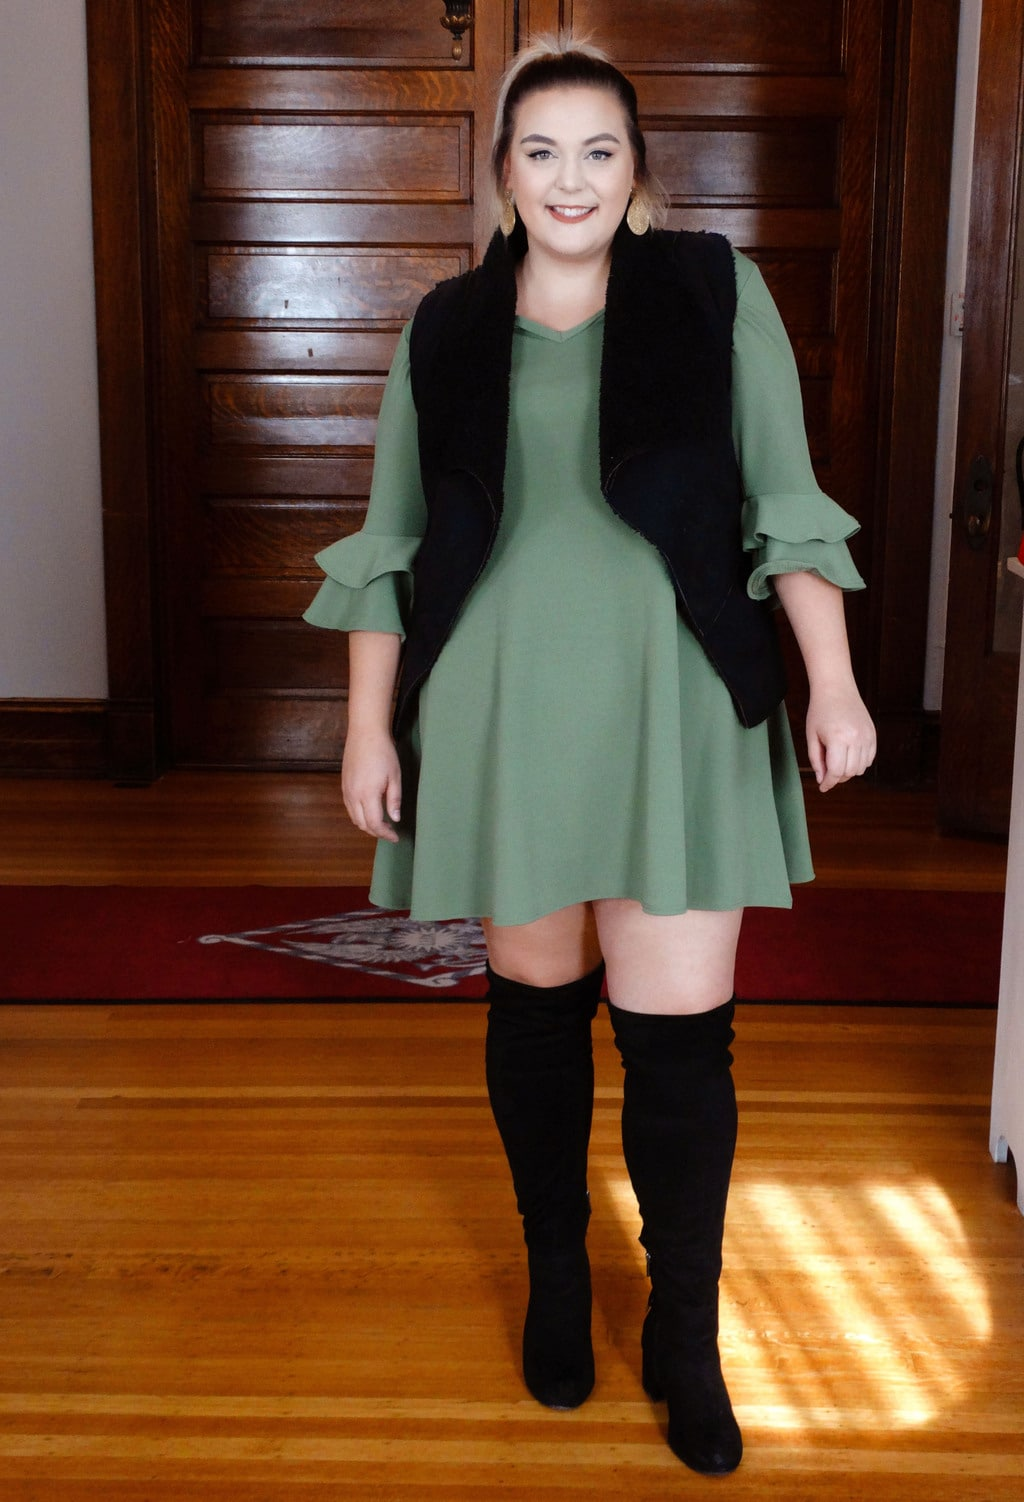 Sydney wears a green dress with layered ruffle bell sleeves and a black furry vest with black over-the-knee boots.